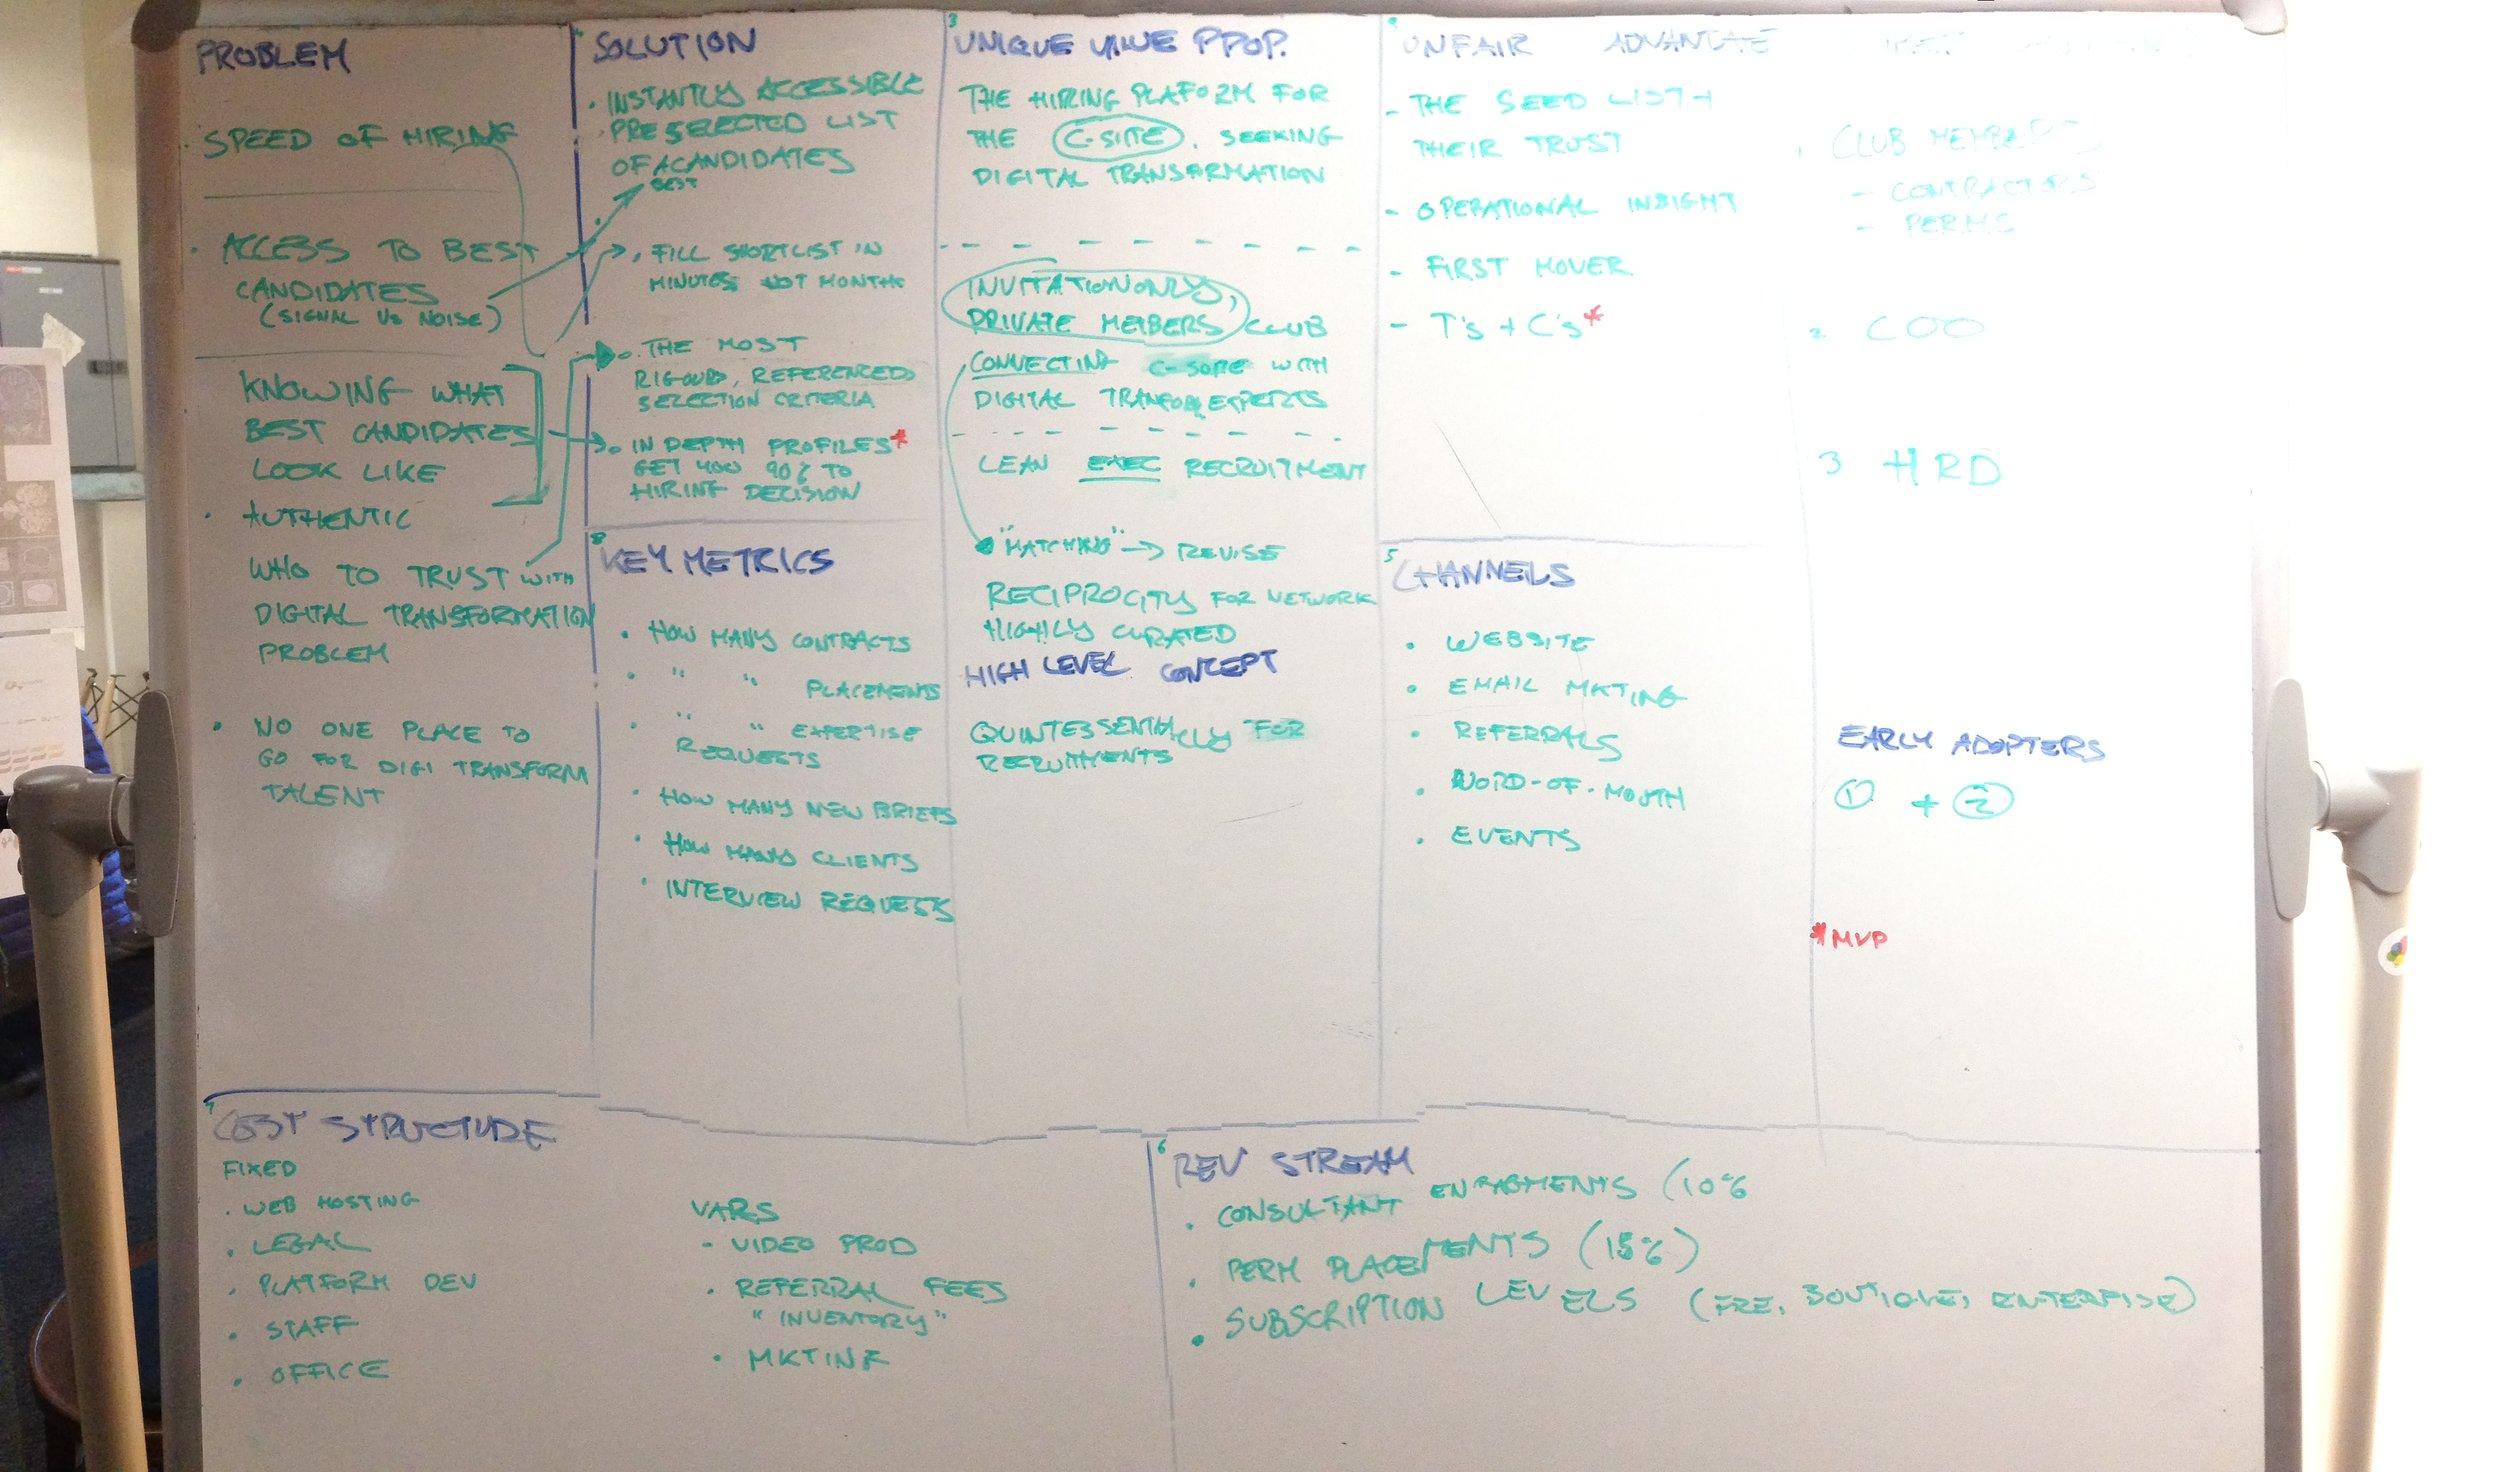 Sketching the business model